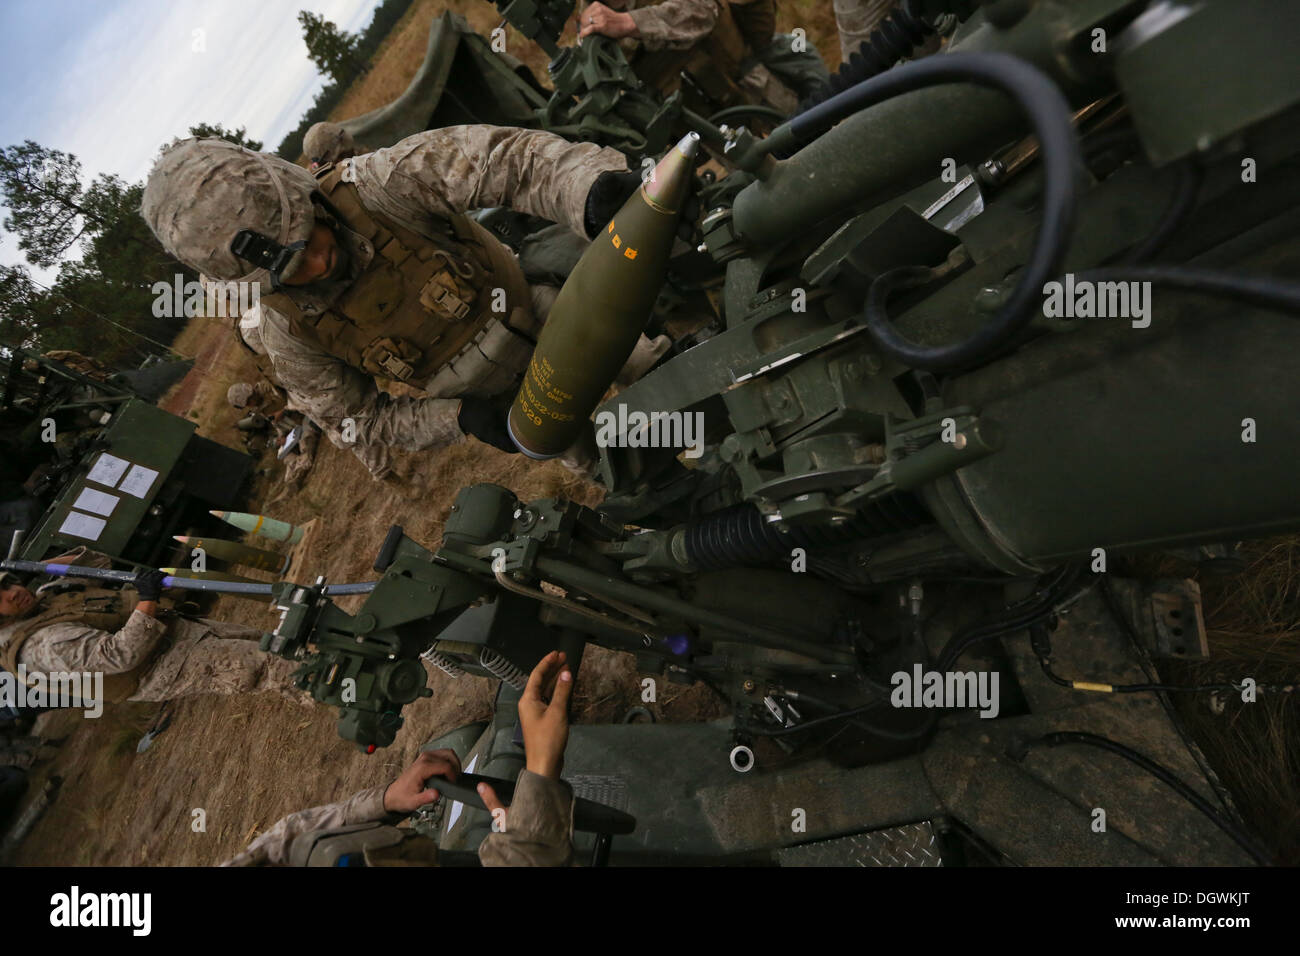 U.S. Marine Corps Lance Cpl. Jacob Carmona, a rammer with India Battery, 3rd Battalion, 10th Marines, loads a high explosive round into the loading tray of an M777 Howitzer during Operation Rolling Thunder aboard Ft. Bragg, N.C., Oct 18, 2013. 10th Marine - Stock Image